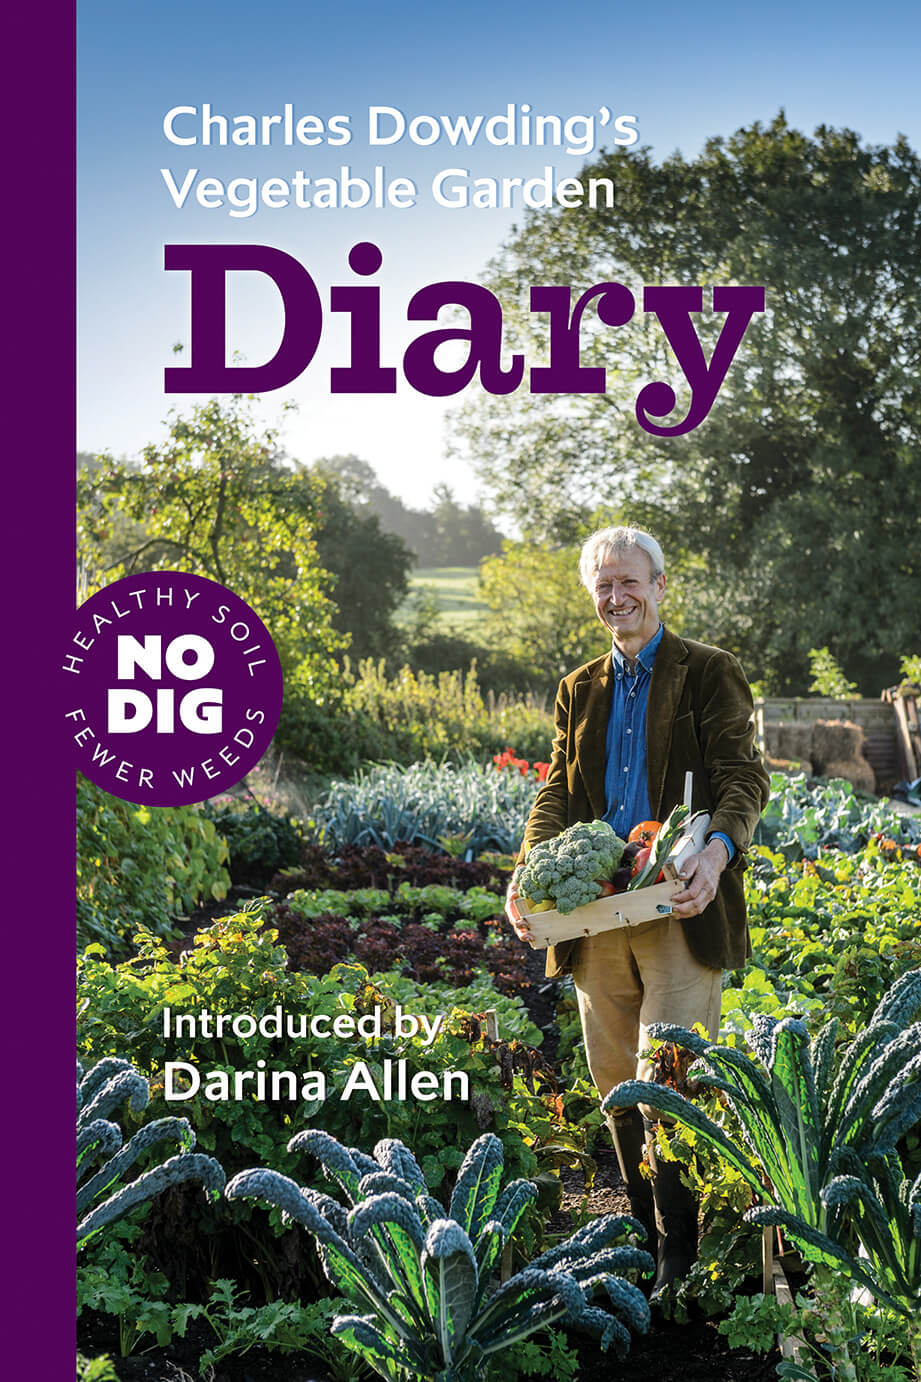 The Charles Dowding's Vegetable Garden Diary cover